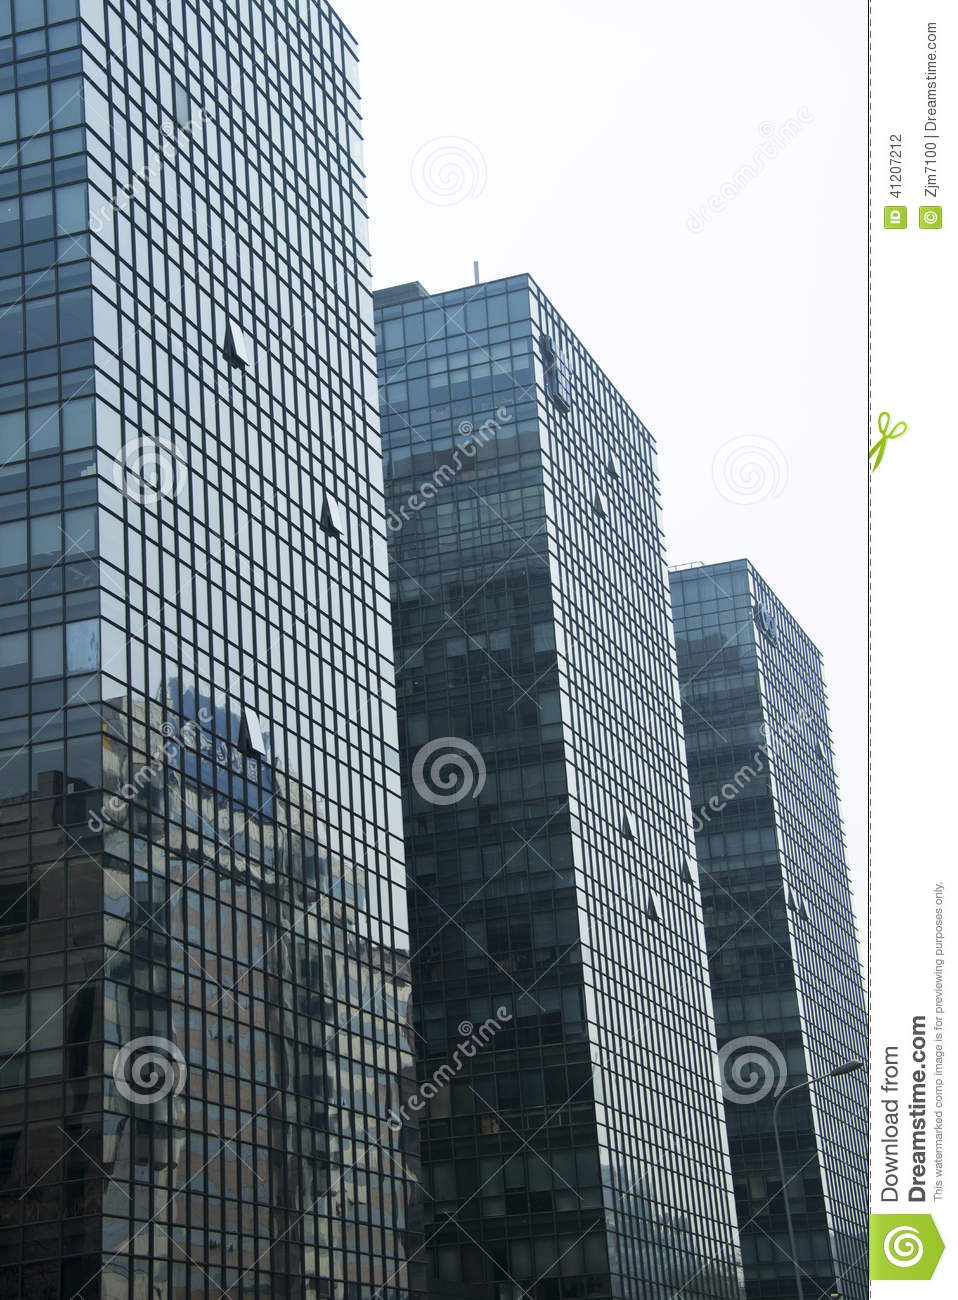 Modern Architecture Building Glass Curtain Wall Stock Photo